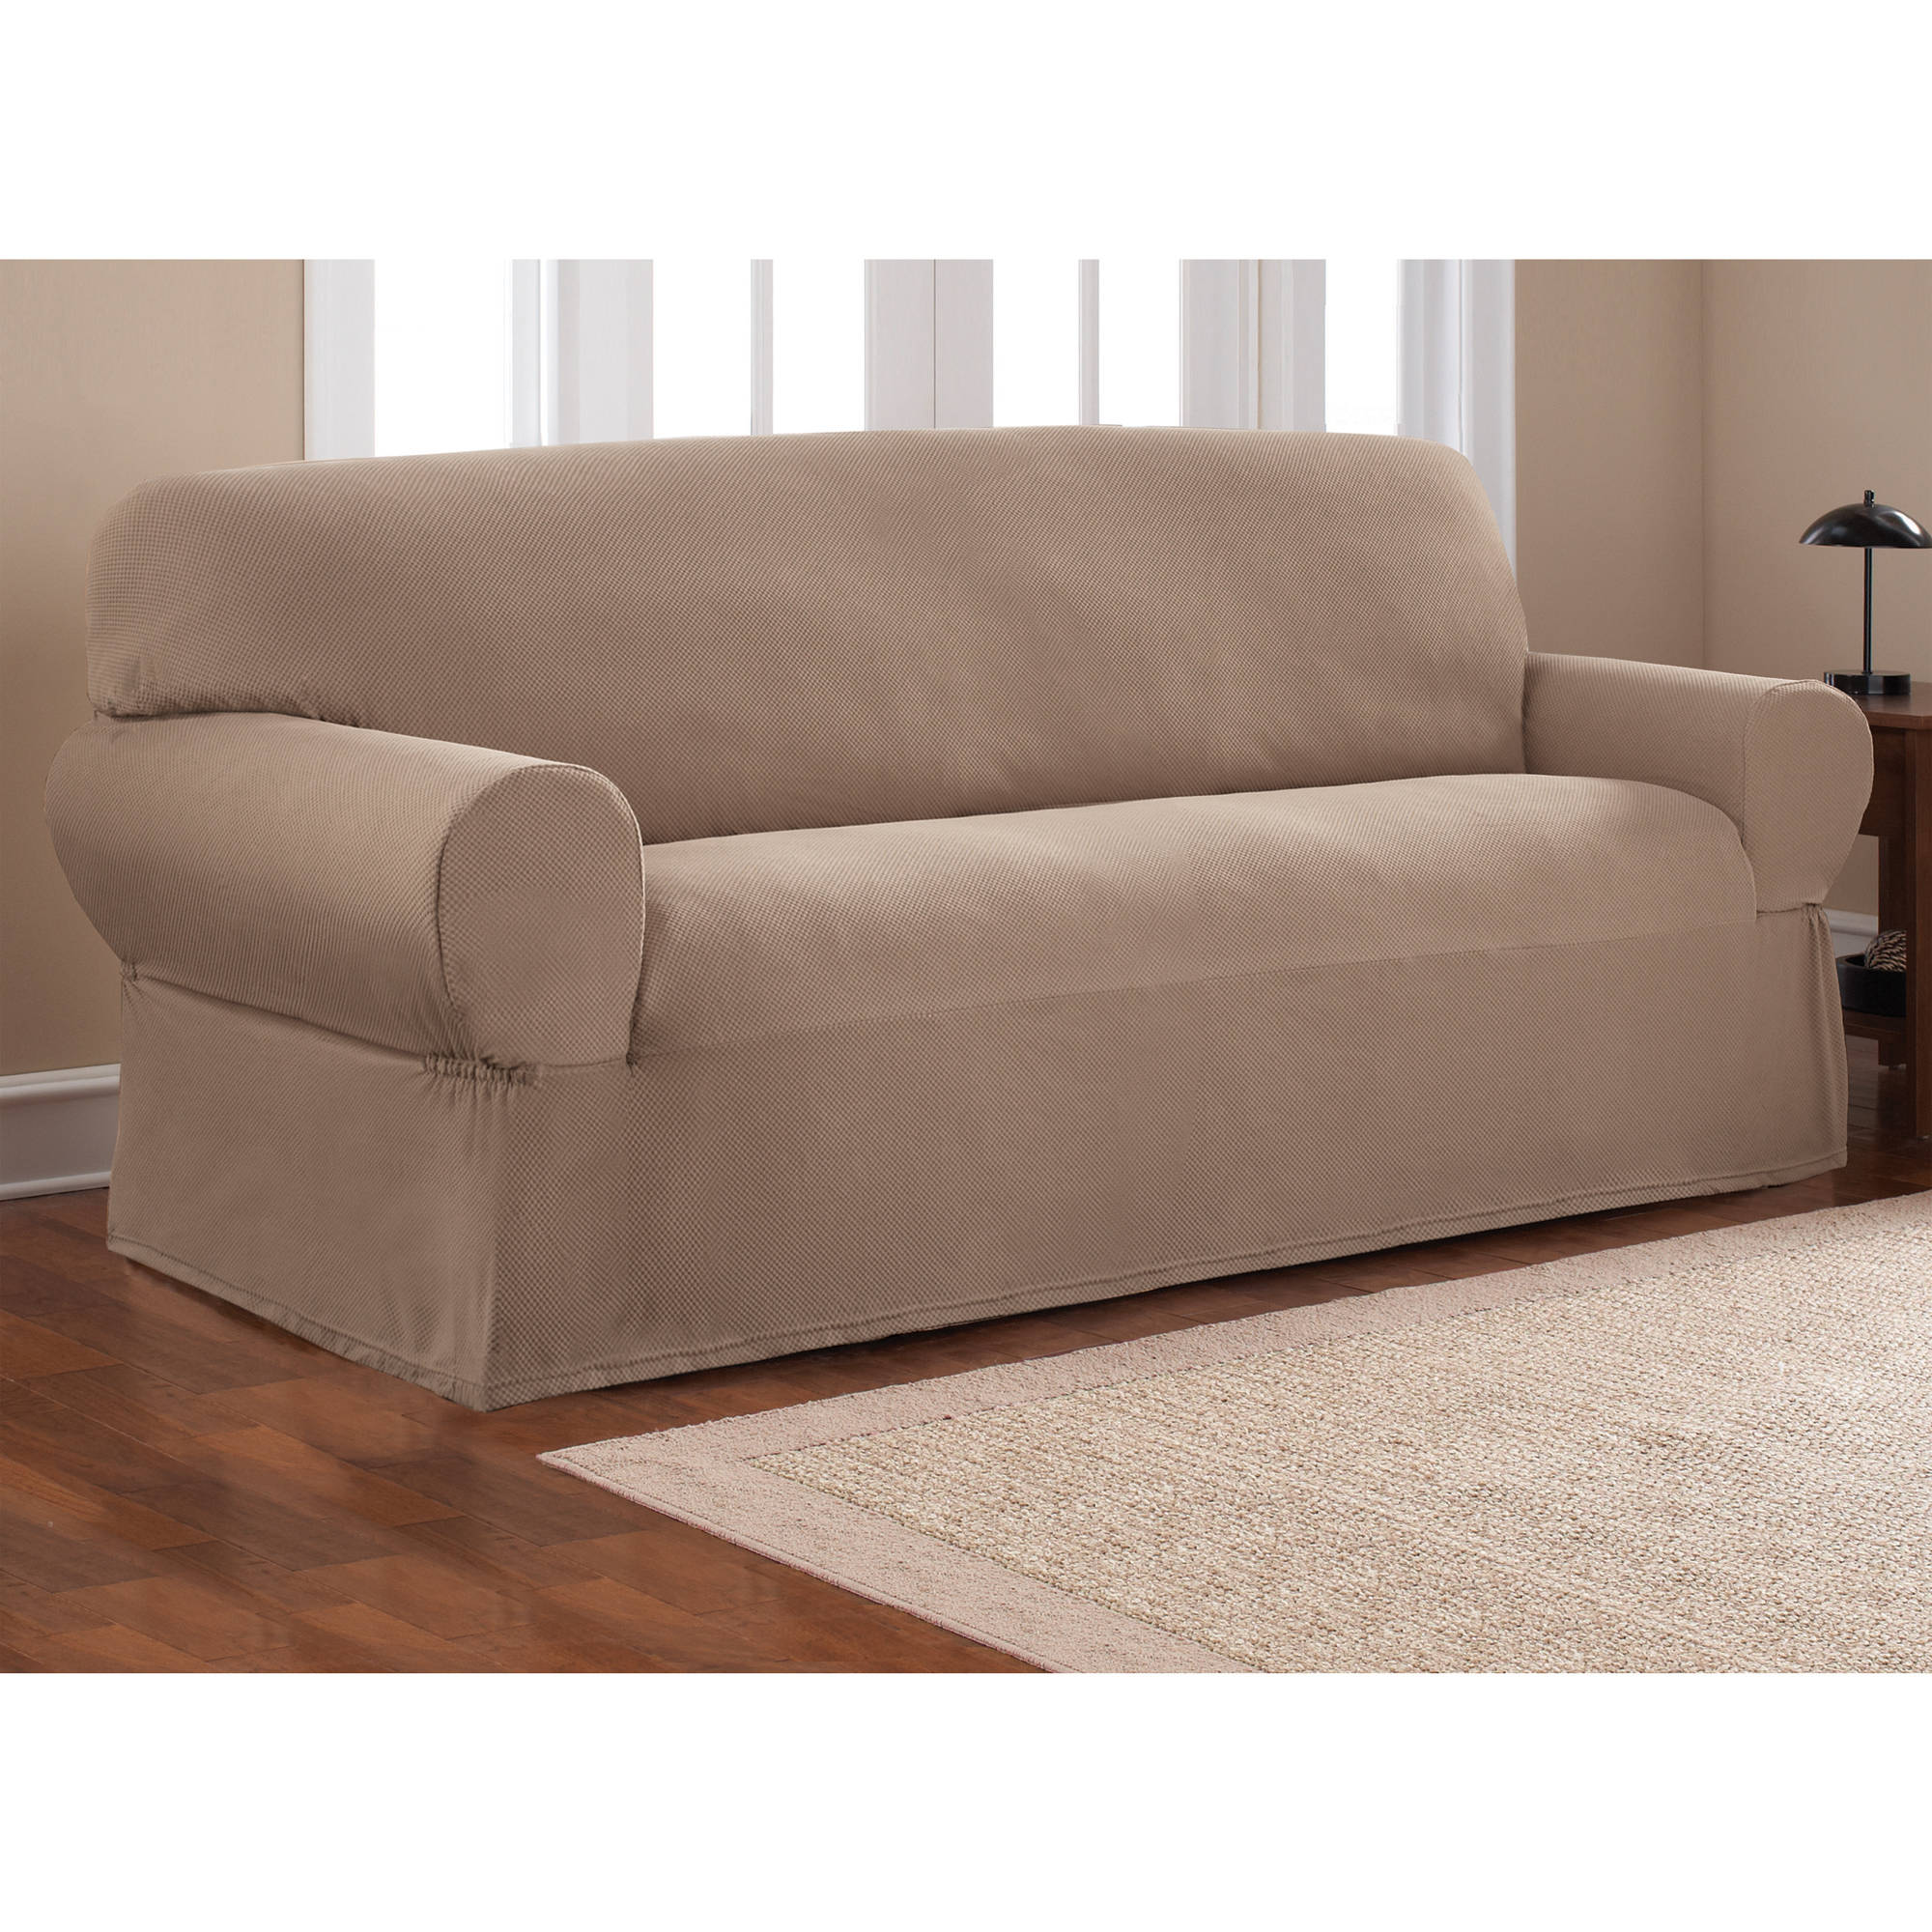 Sectional Couch Slipcovers | Couch Seat Covers | Slipcovers For Sofas With Cushions Separate